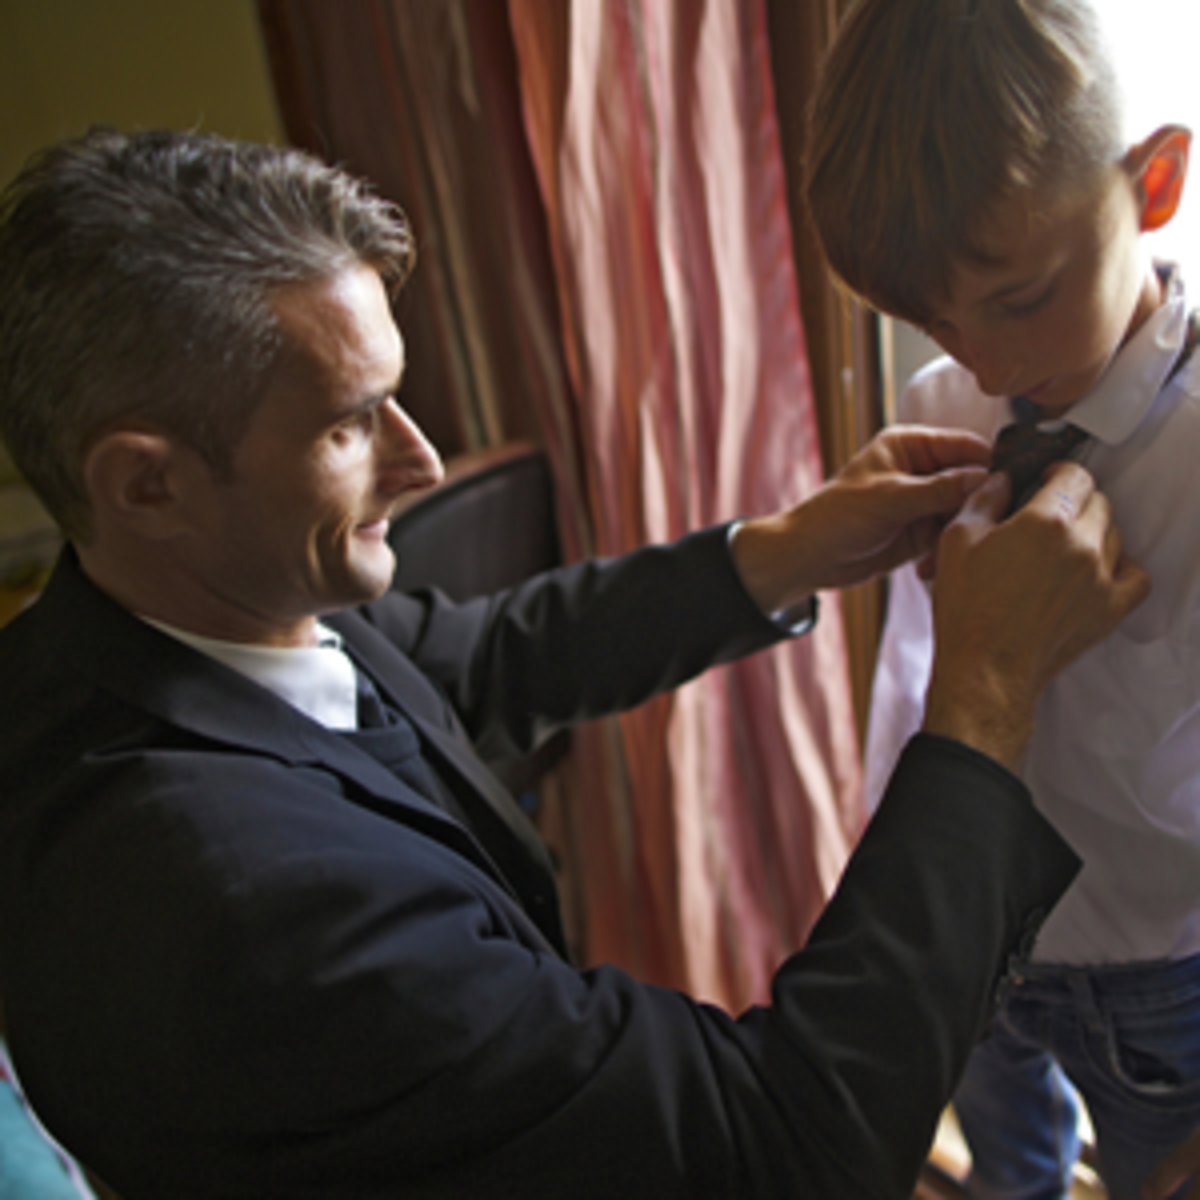 Father helping his son get ready for church